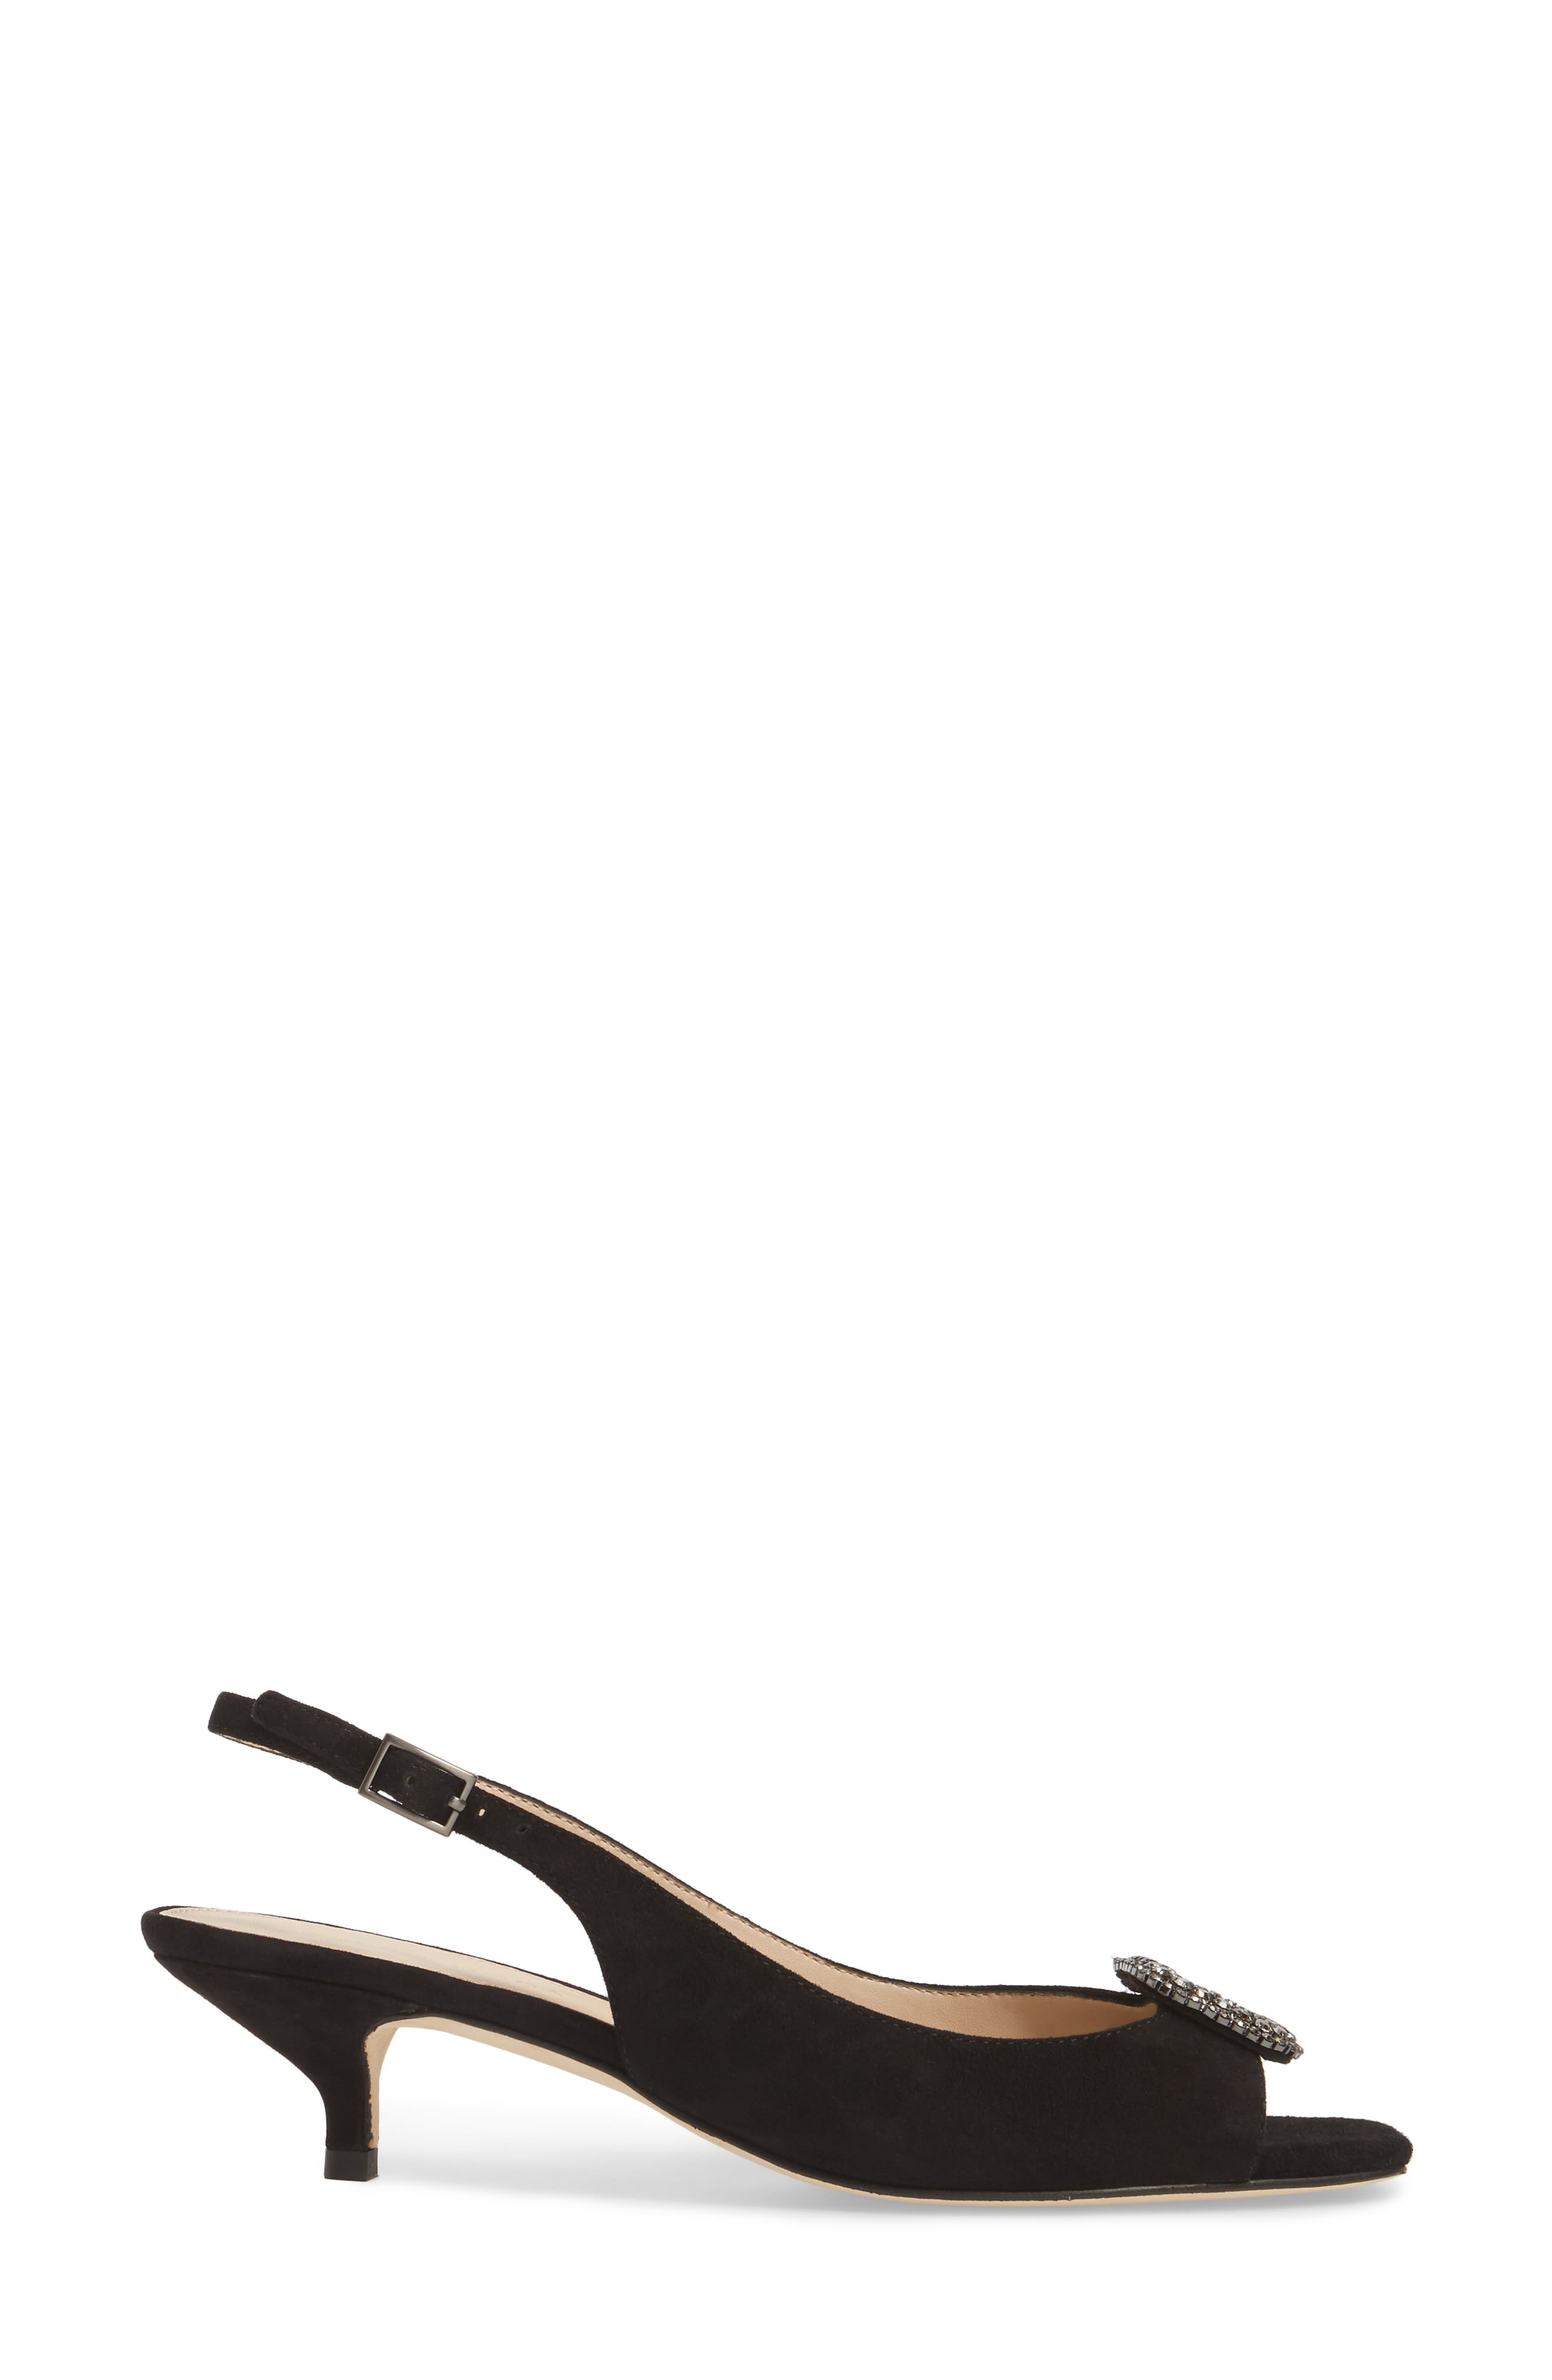 Fresca Slingback Sandal,                             Alternate thumbnail 3, color,                             Black Suede